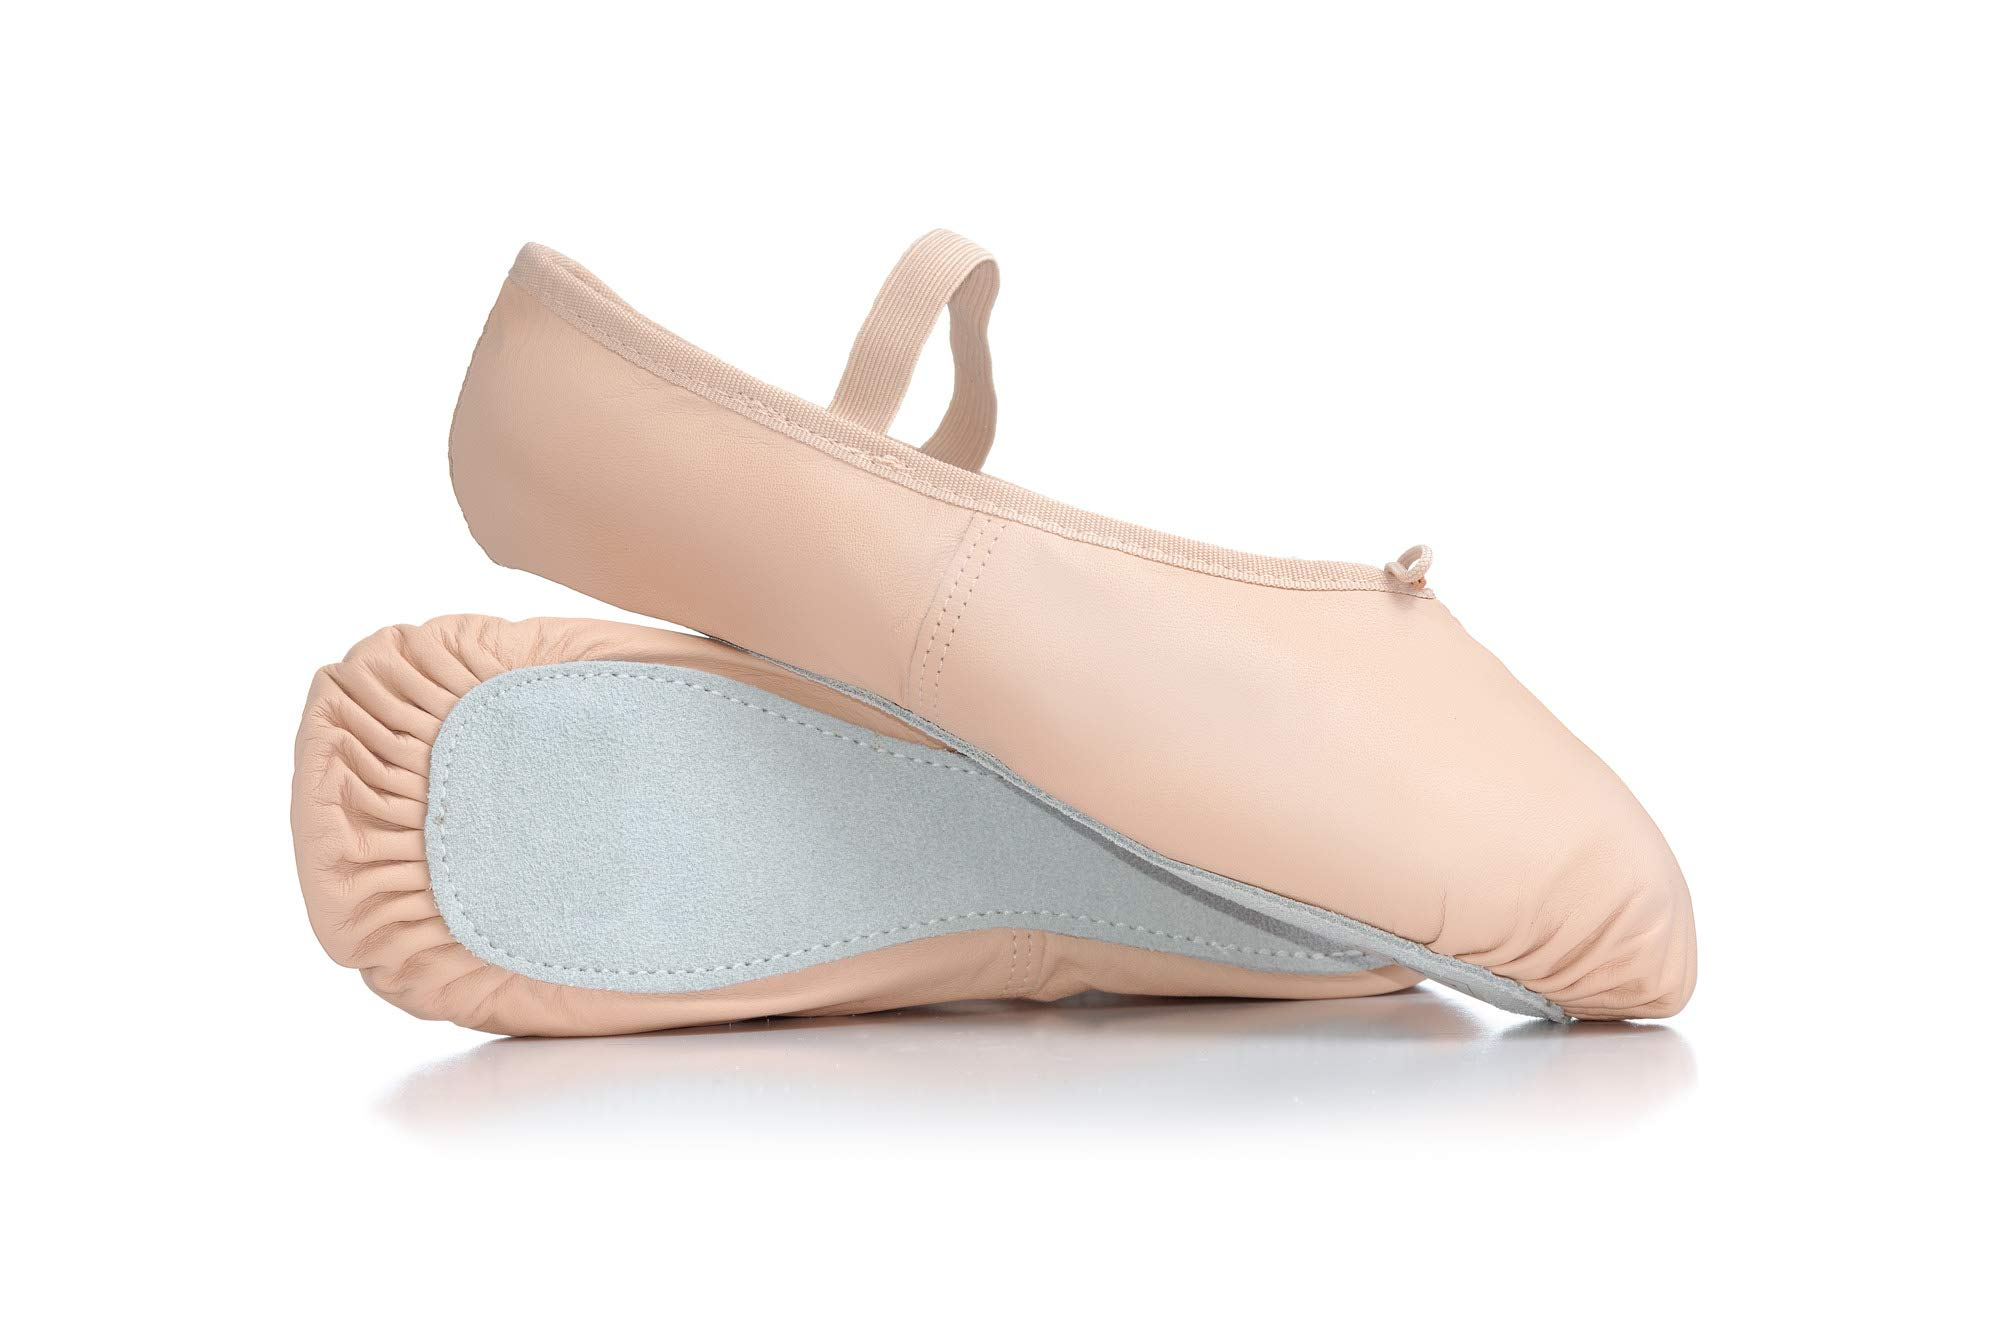 Adult Premium Leather Full Sole Ballet Shoes T2000PNK03.0W Pink 3 W US by Theatricals